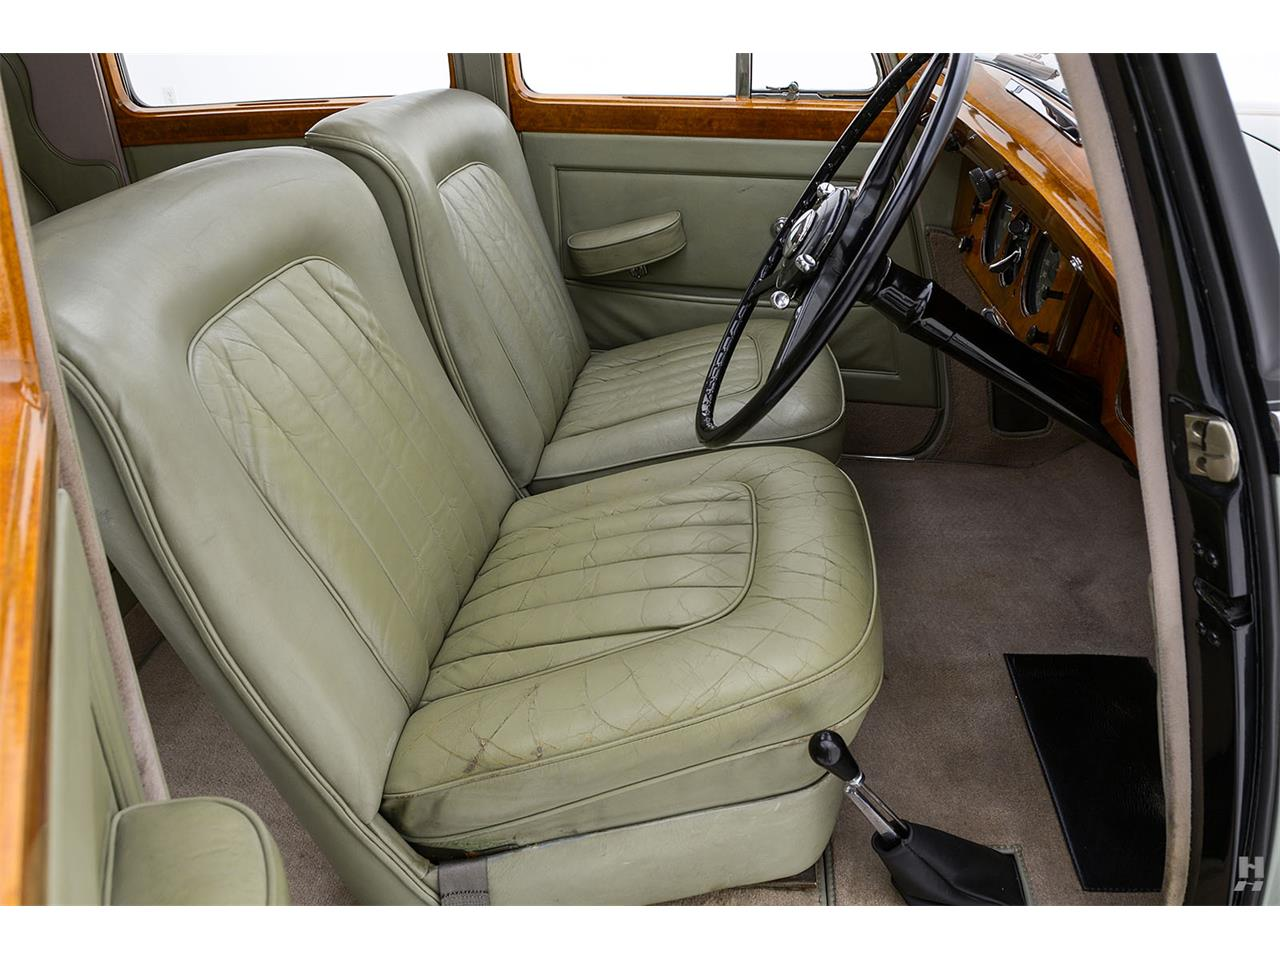 Large Picture of Classic 1952 Mark VI located in Missouri - $43,500.00 Offered by Hyman Ltd. Classic Cars - R3WC